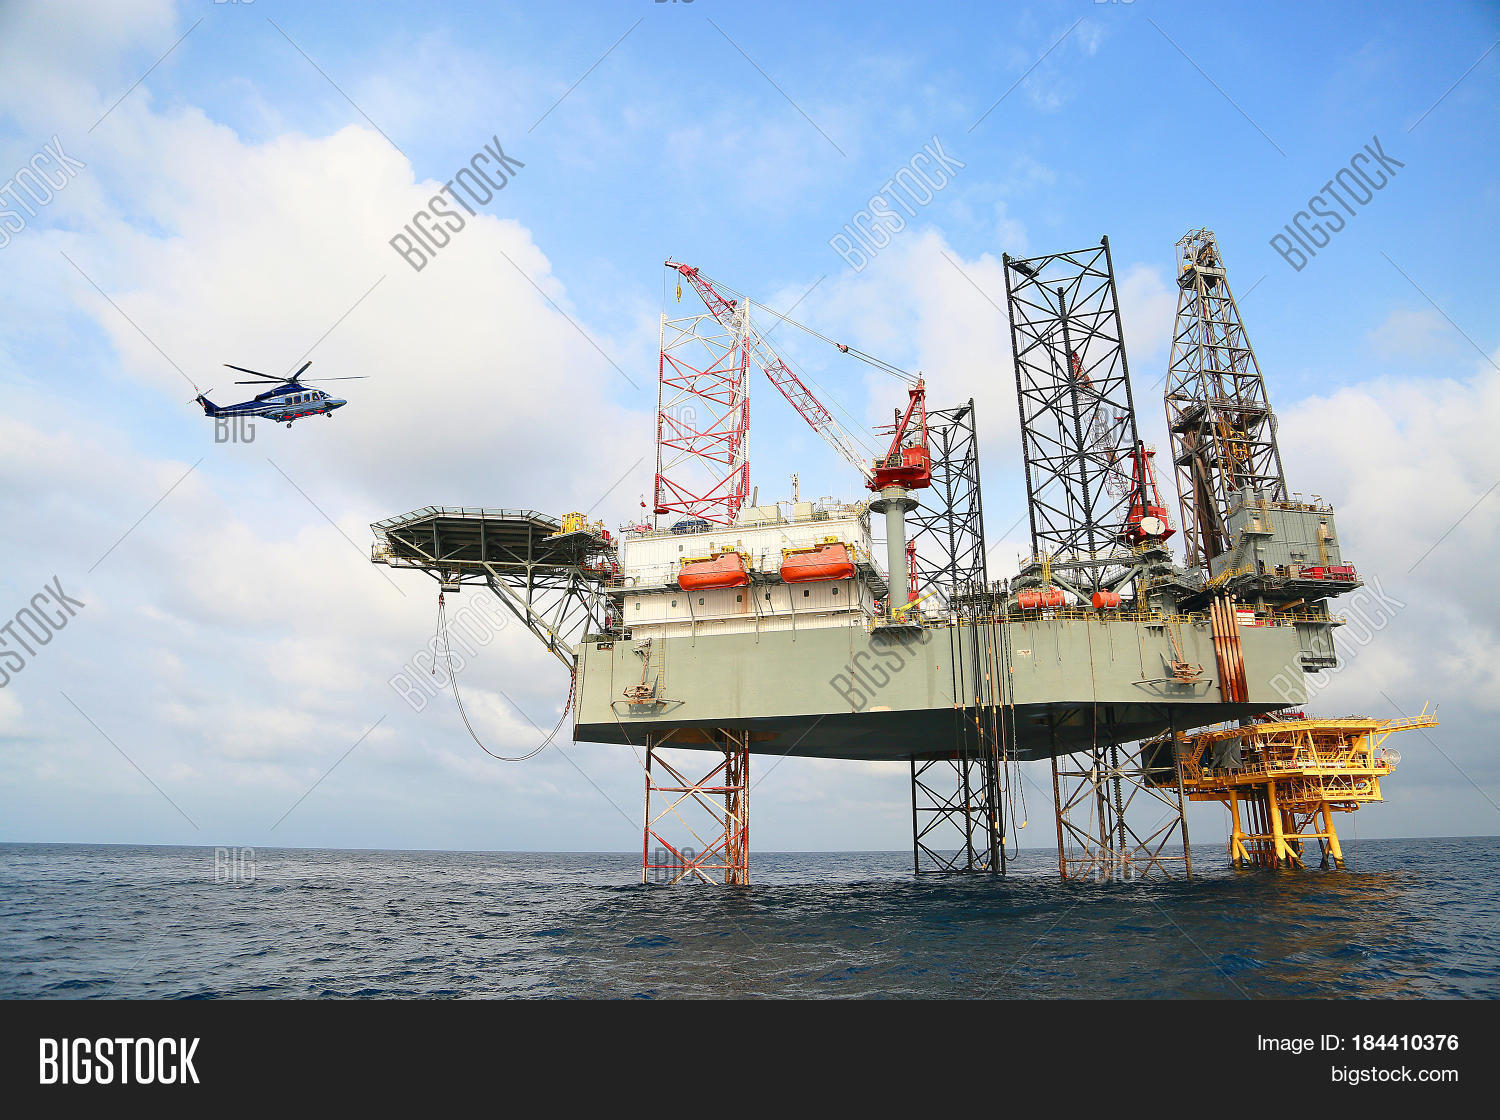 Offshore Construction Image & Photo (Free Trial) | Bigstock